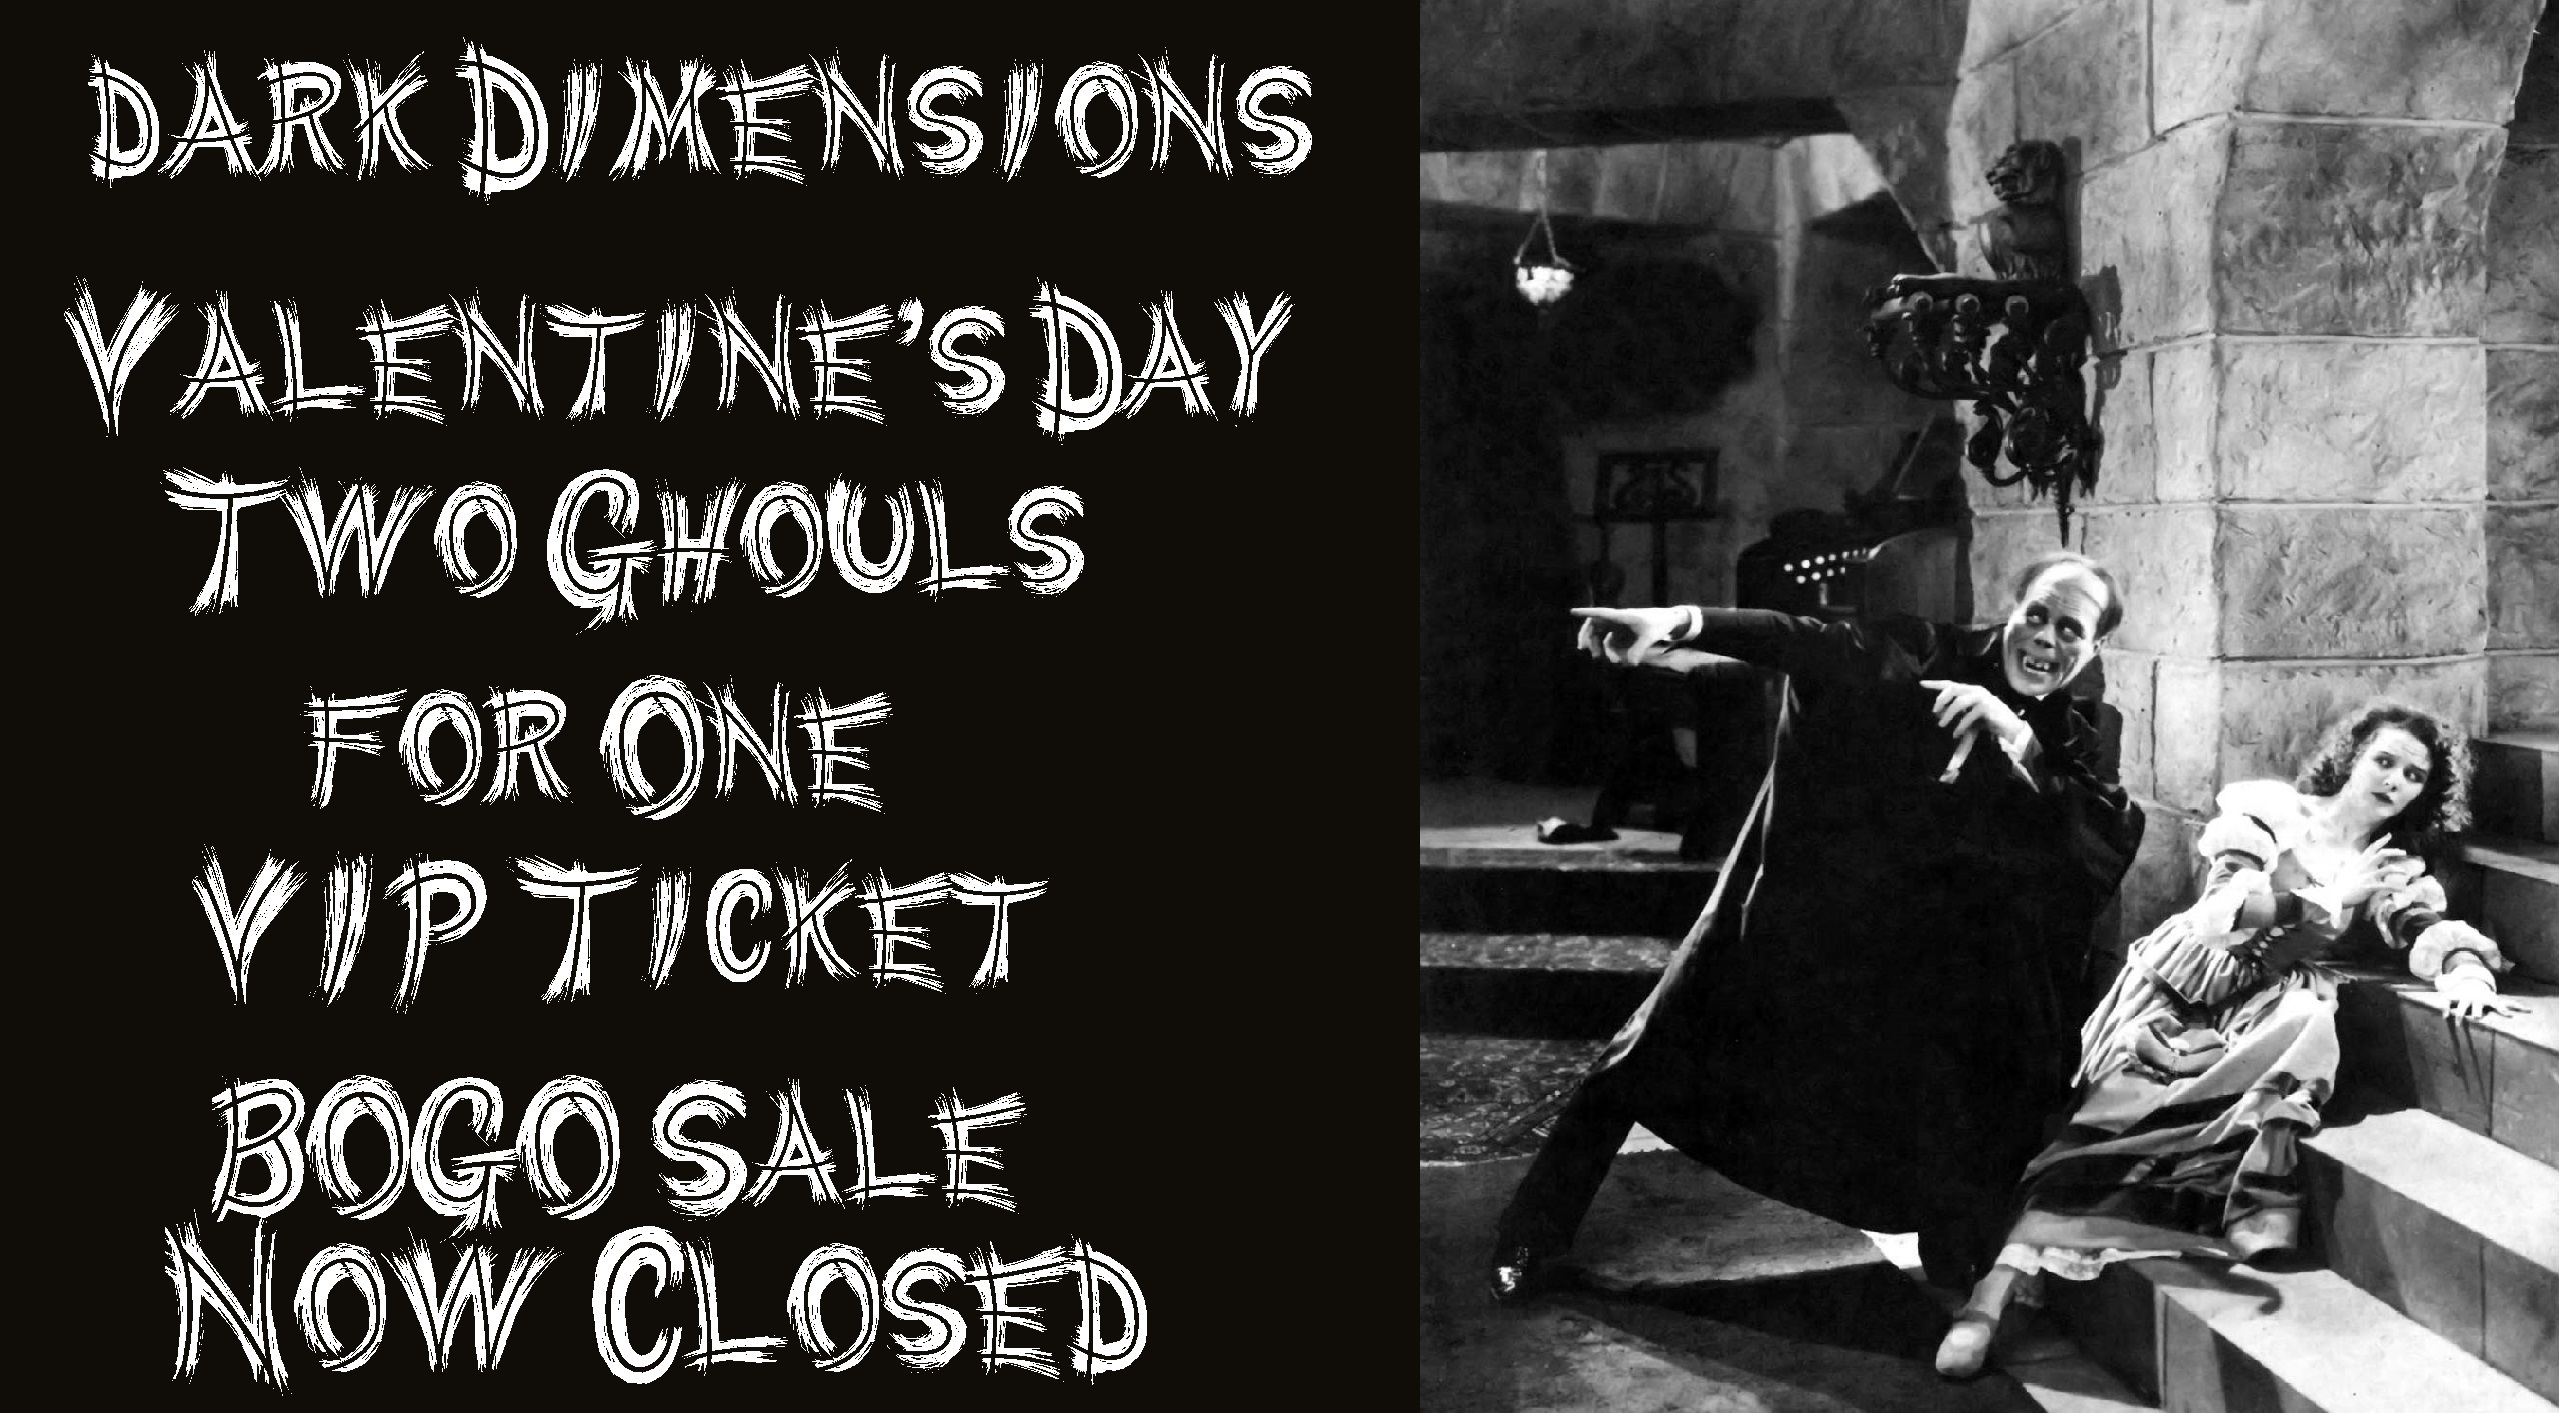 Dark Dimensions Two Ghouls for One VIP Ticket BOGO Closed